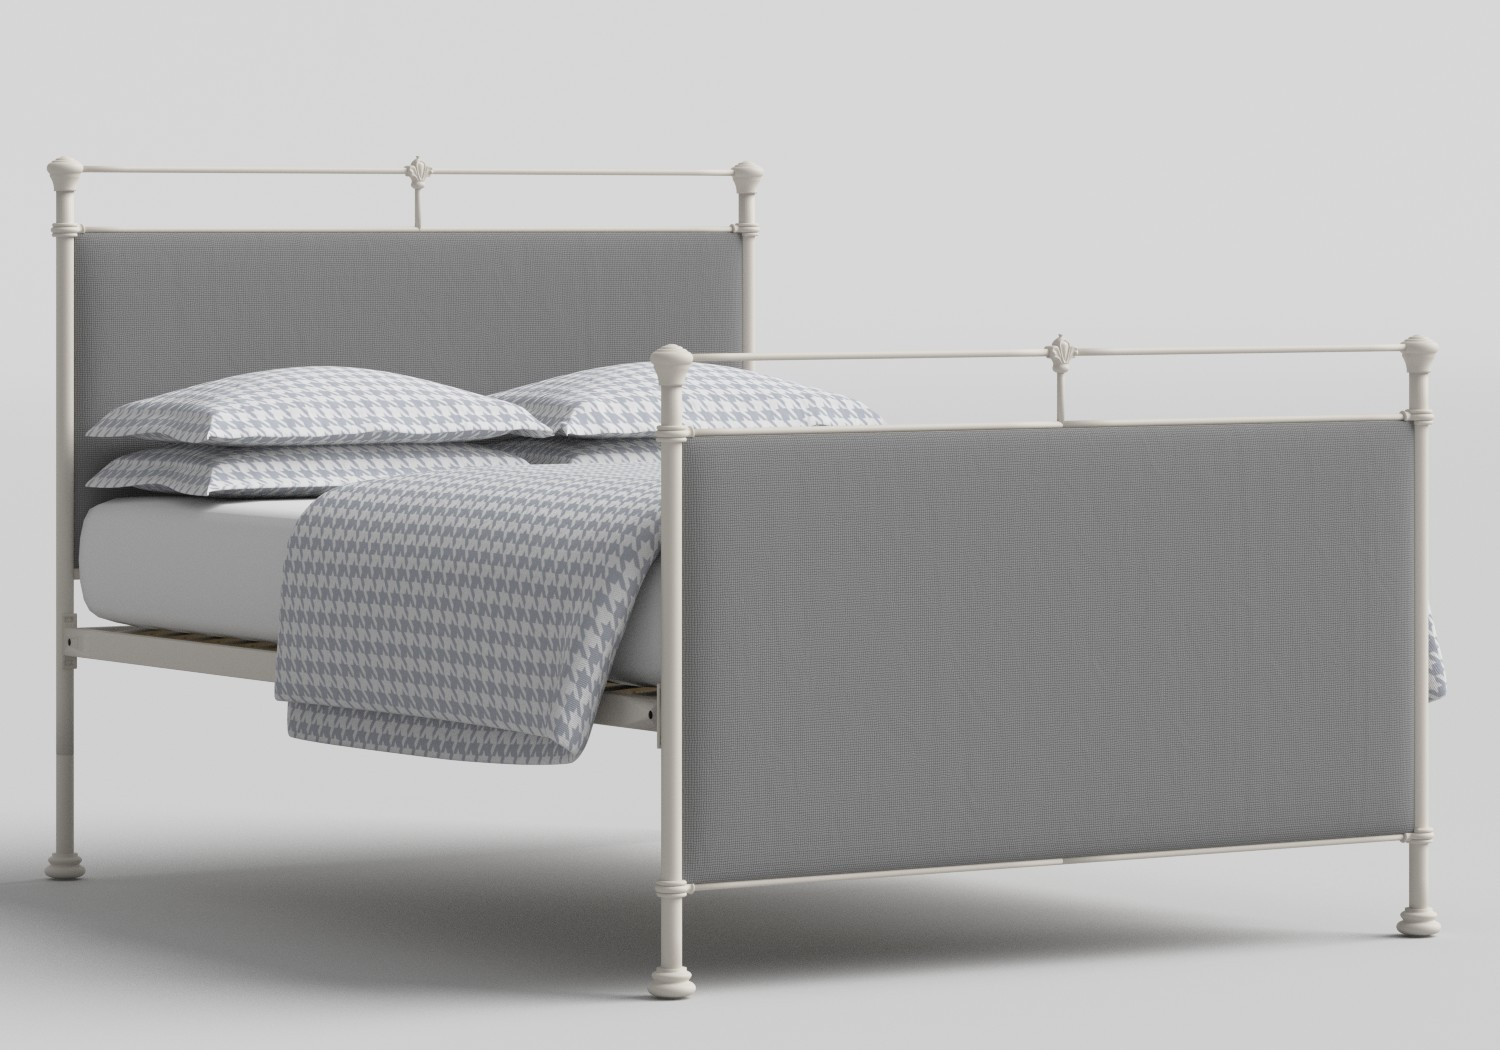 Lille Iron/Metal Upholstered Bed in Glossy Ivory with Grey fabric